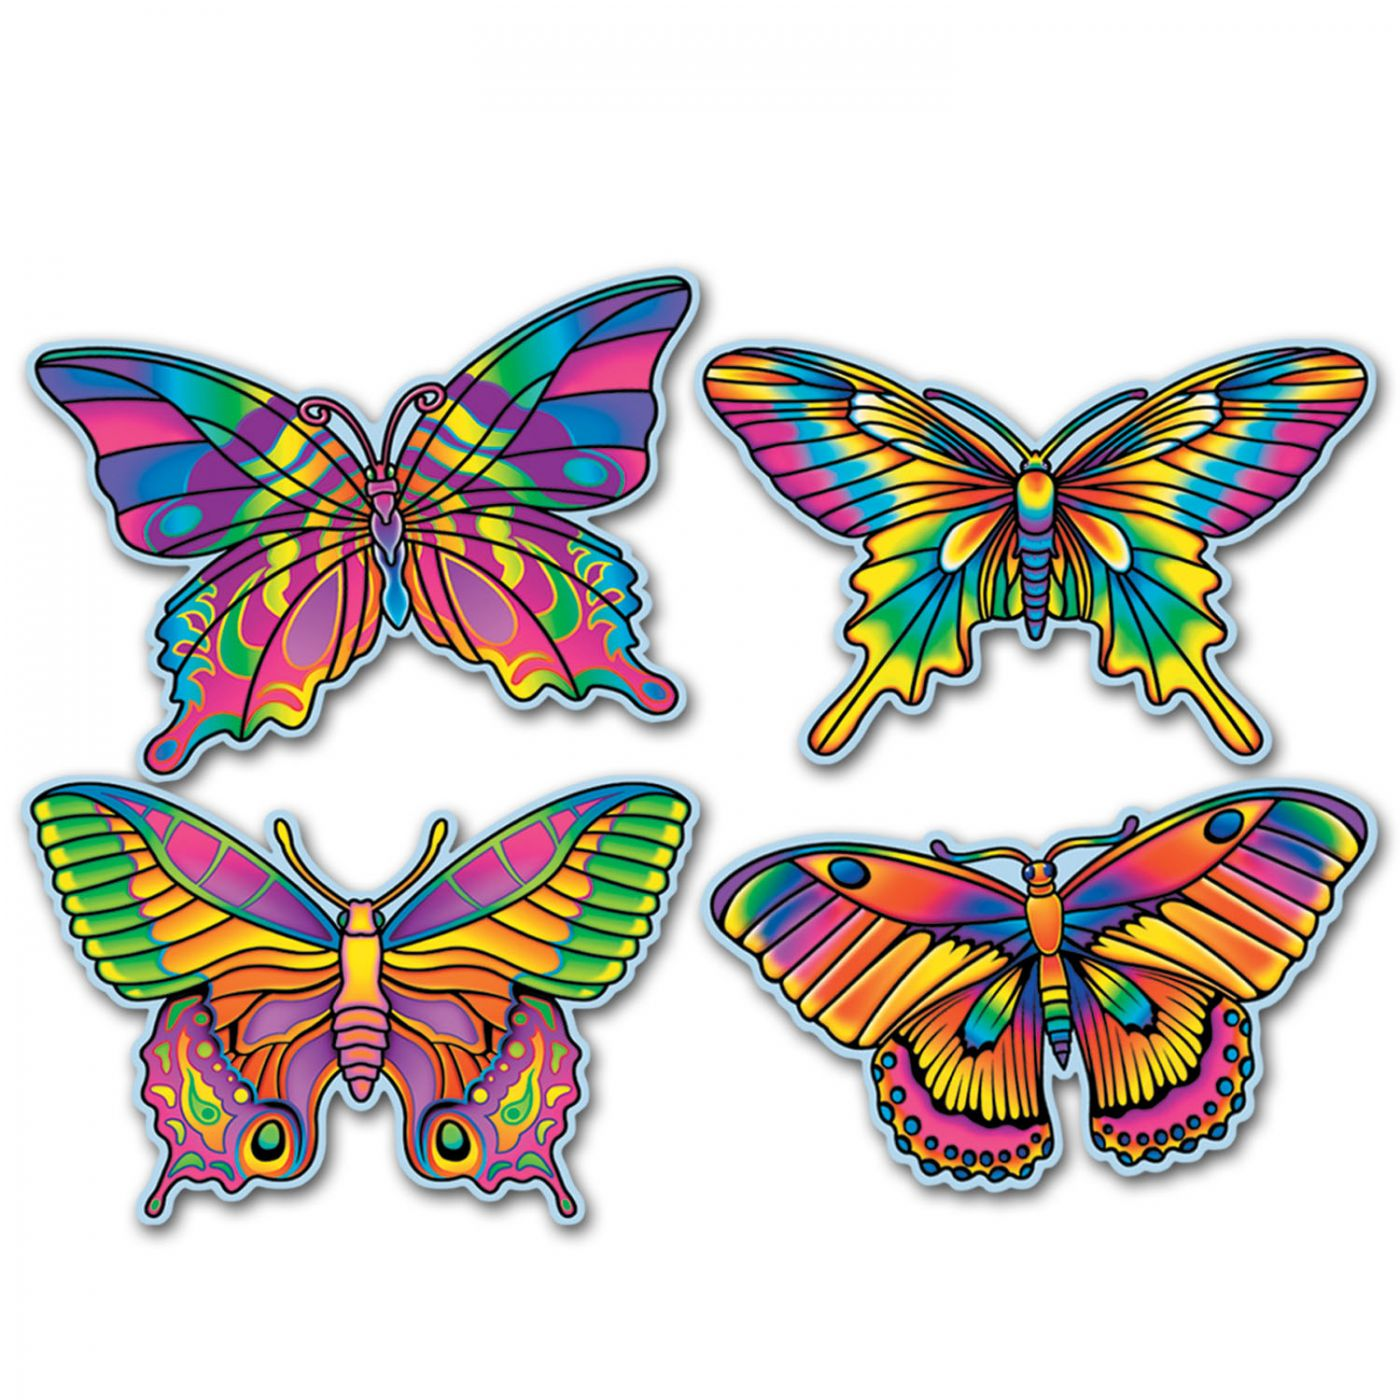 Image of Butterfly Cutouts (24)